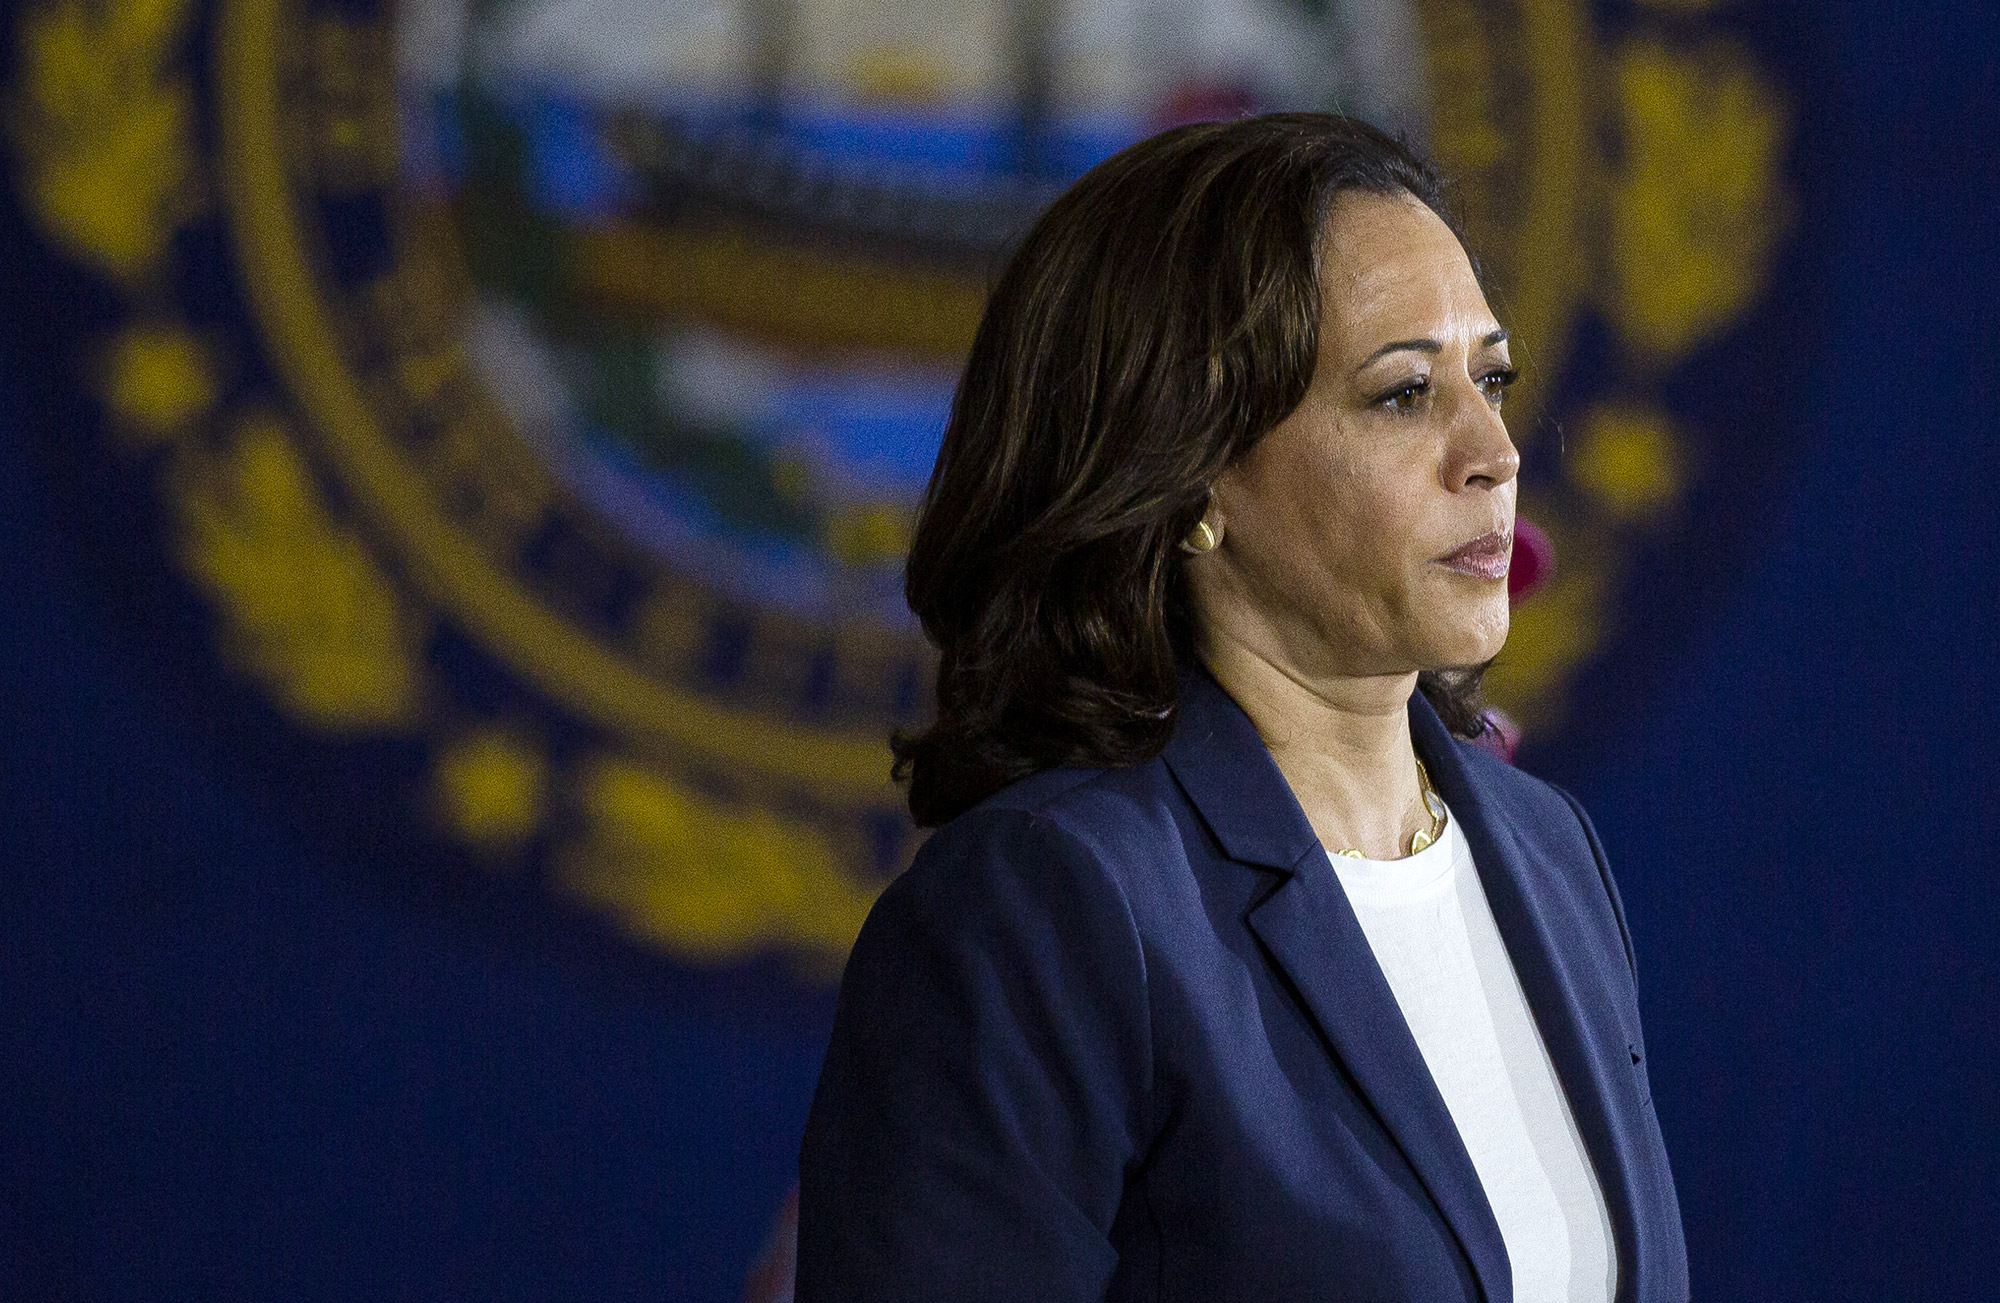 Kamala Harris S Offices Fought Payments To Wrongly Convicted Bloomberg